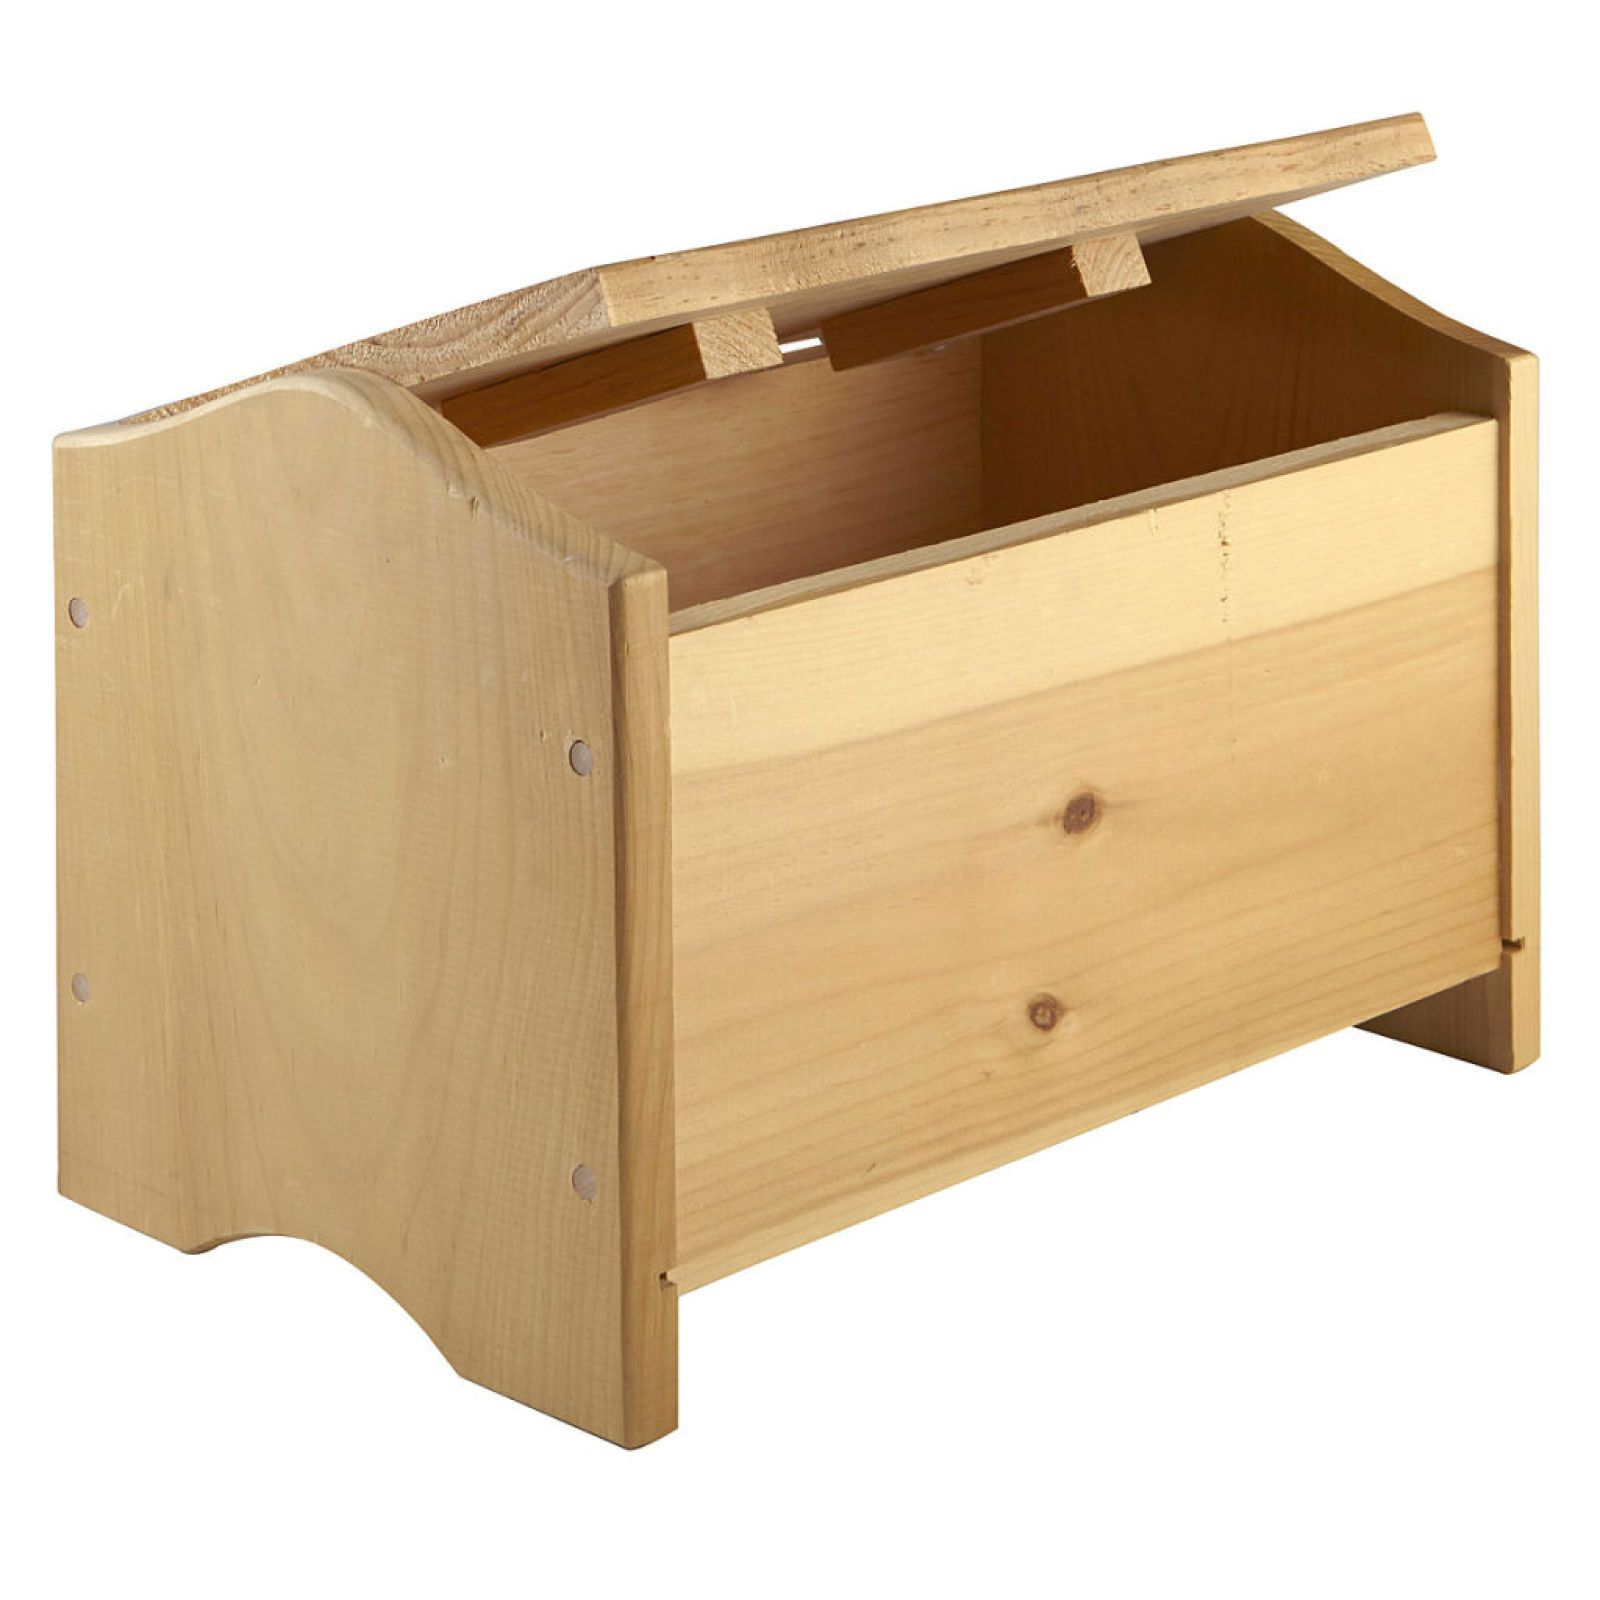 Small Hope Chest By Artminds With Images Wood Storage Box Hope Chest Small Woodworking Projects